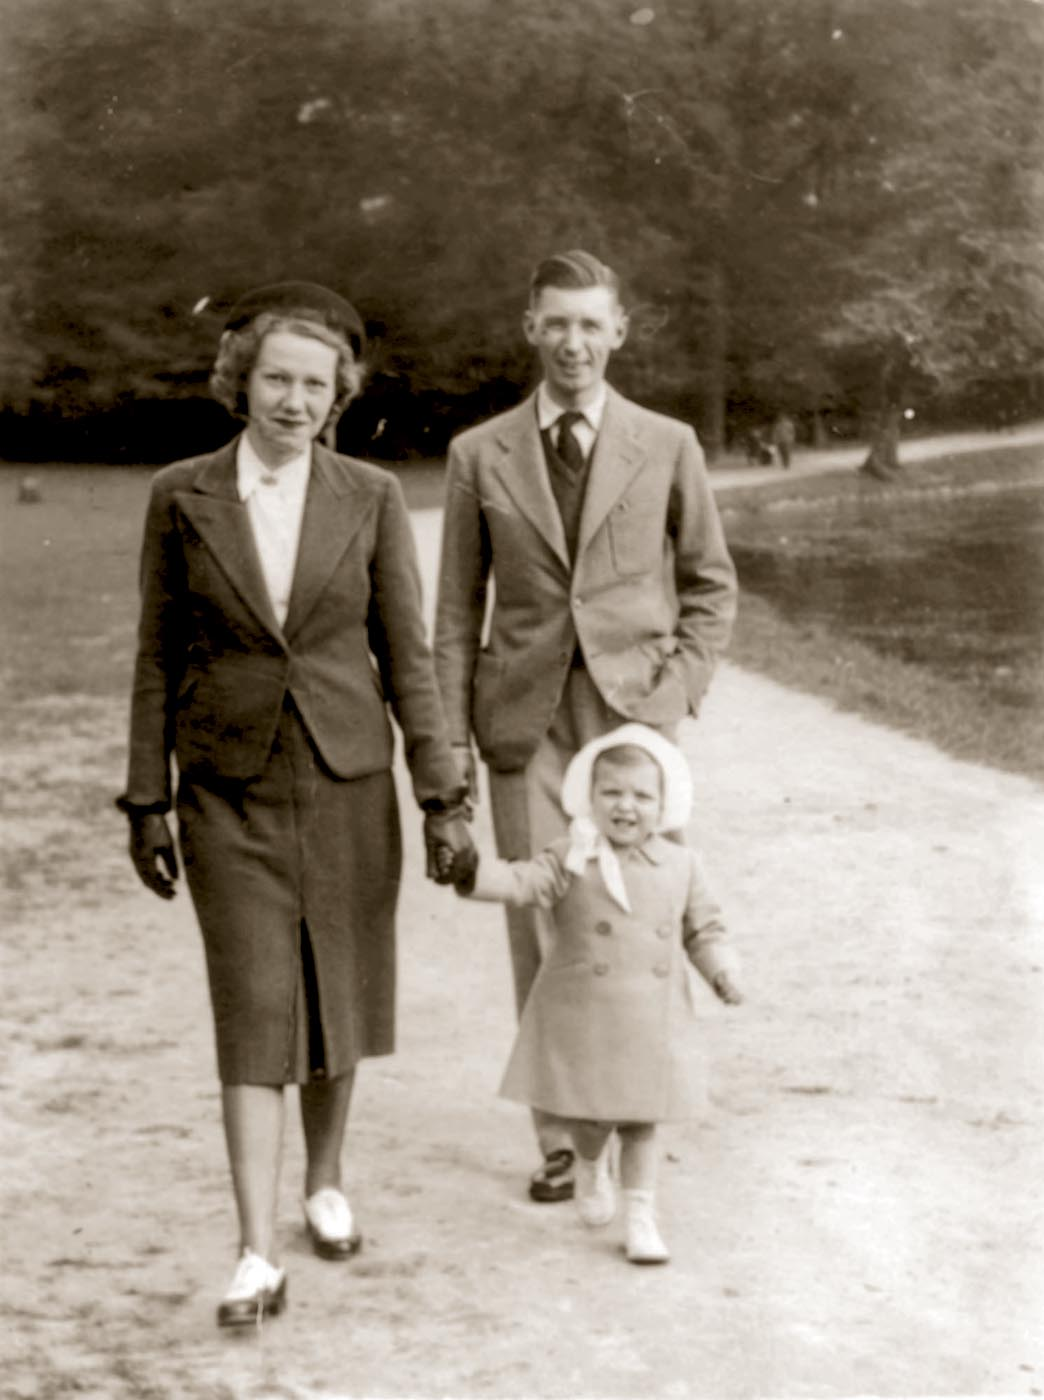 Hergé and Germaine in 1940